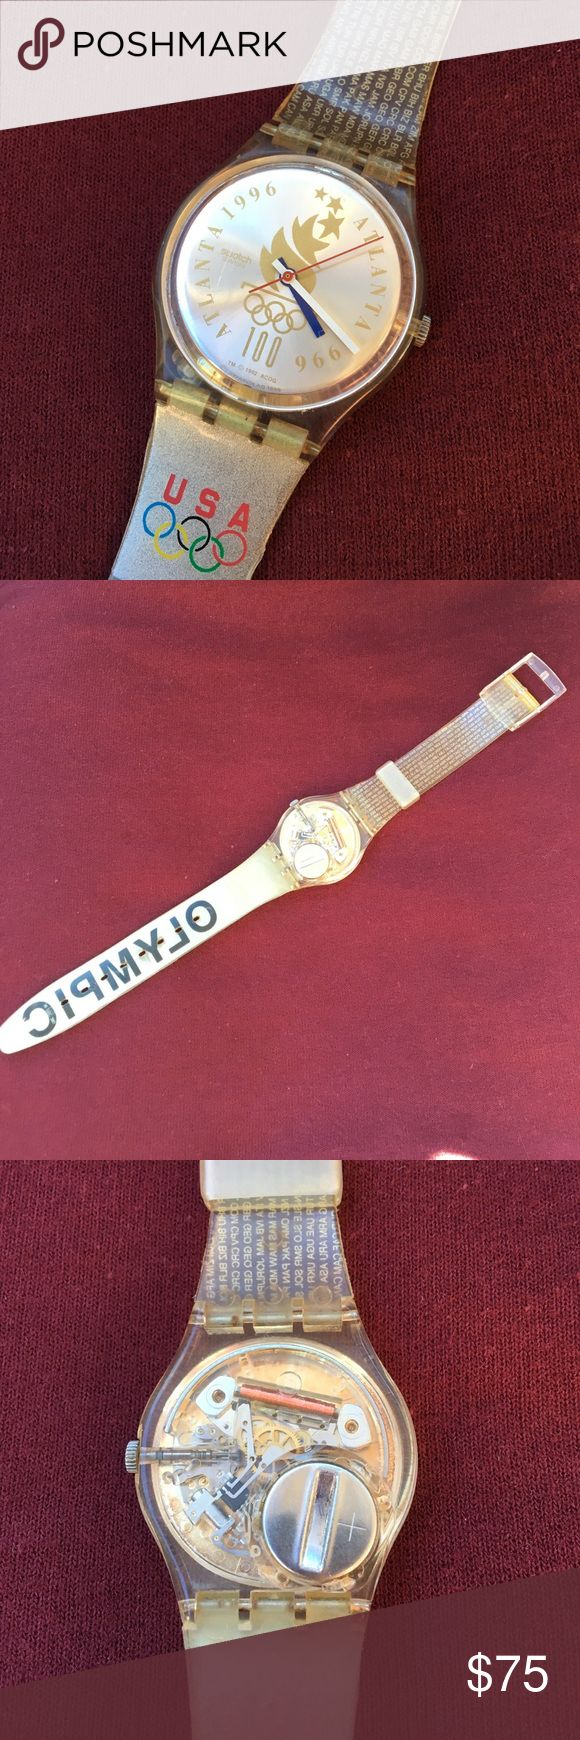 🎉HP🎉 SWATCH WATCH USA Olympic Team Vintage, retro 90's SWATCH WATCH USA Atlanta 1996 Olympic Team. Brand new battery, keeping great time. Minor wear on band as shown in fourth pic. Scratch on face as shown in first pic. Unisex.  🎈🎉 Host Pick, Sporty Chic Style Party 10-11-2017 🎉🎈 Swatch Accessories Watches